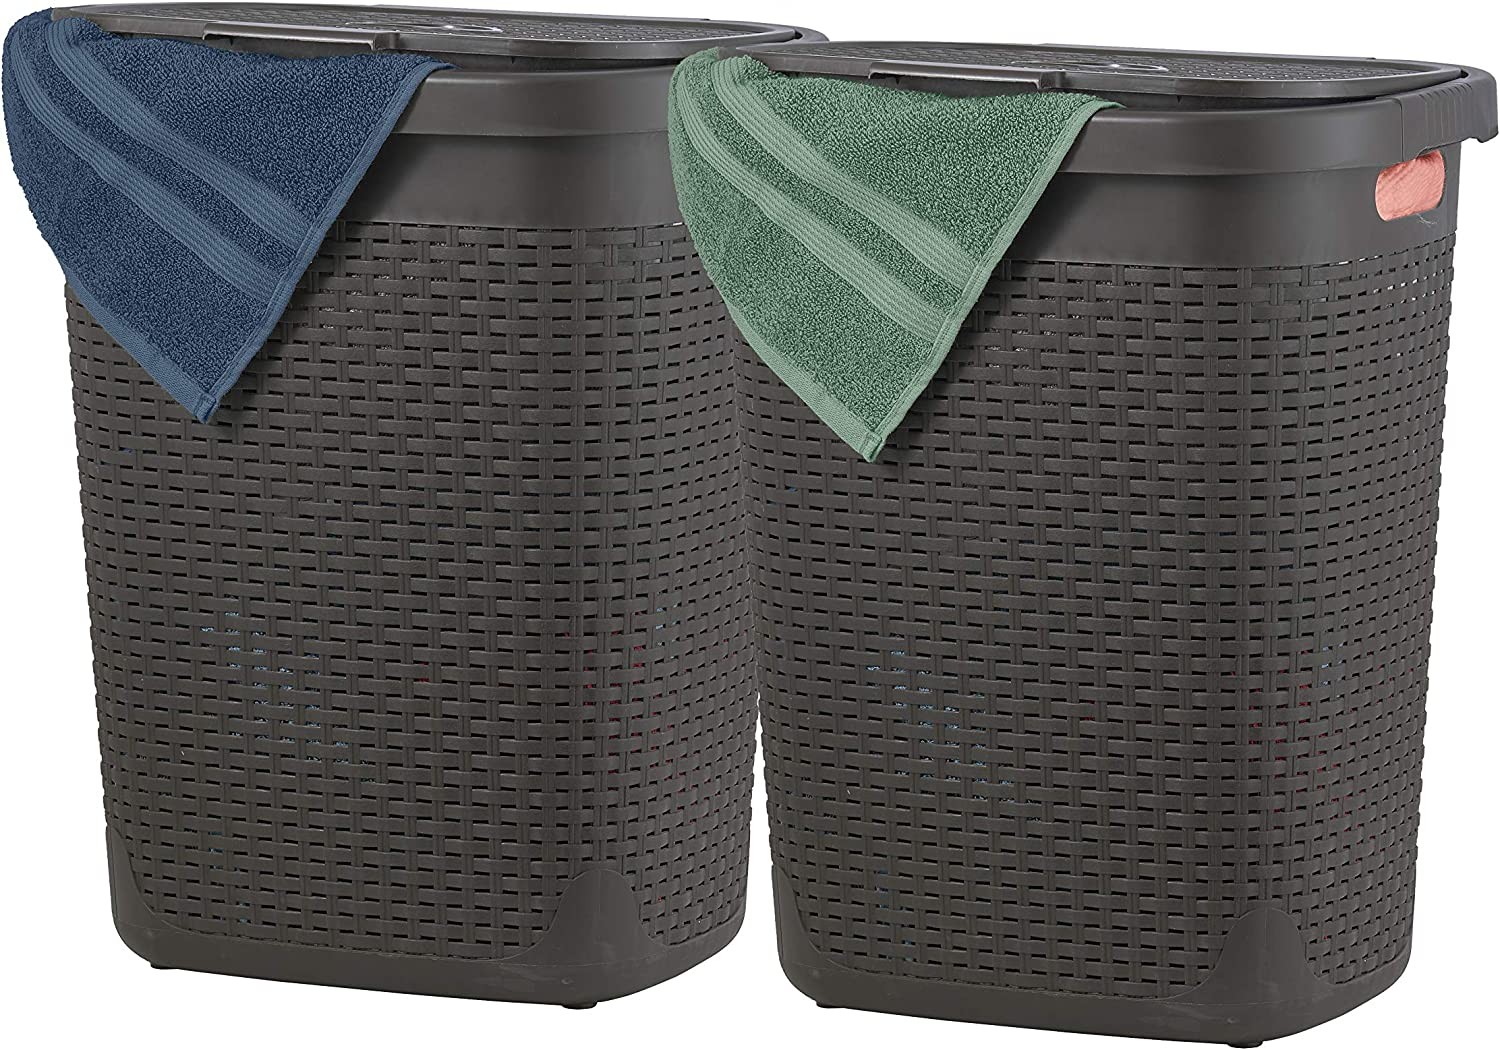 Superio Laundry Hamper with Lid 50 Liter (2 Pack) Plastic Wicker Large Hampers Basket with Cutout Handles, Deluxe Bin to Storage Dirty Cloths in Washroom Bathroom… (Brown)